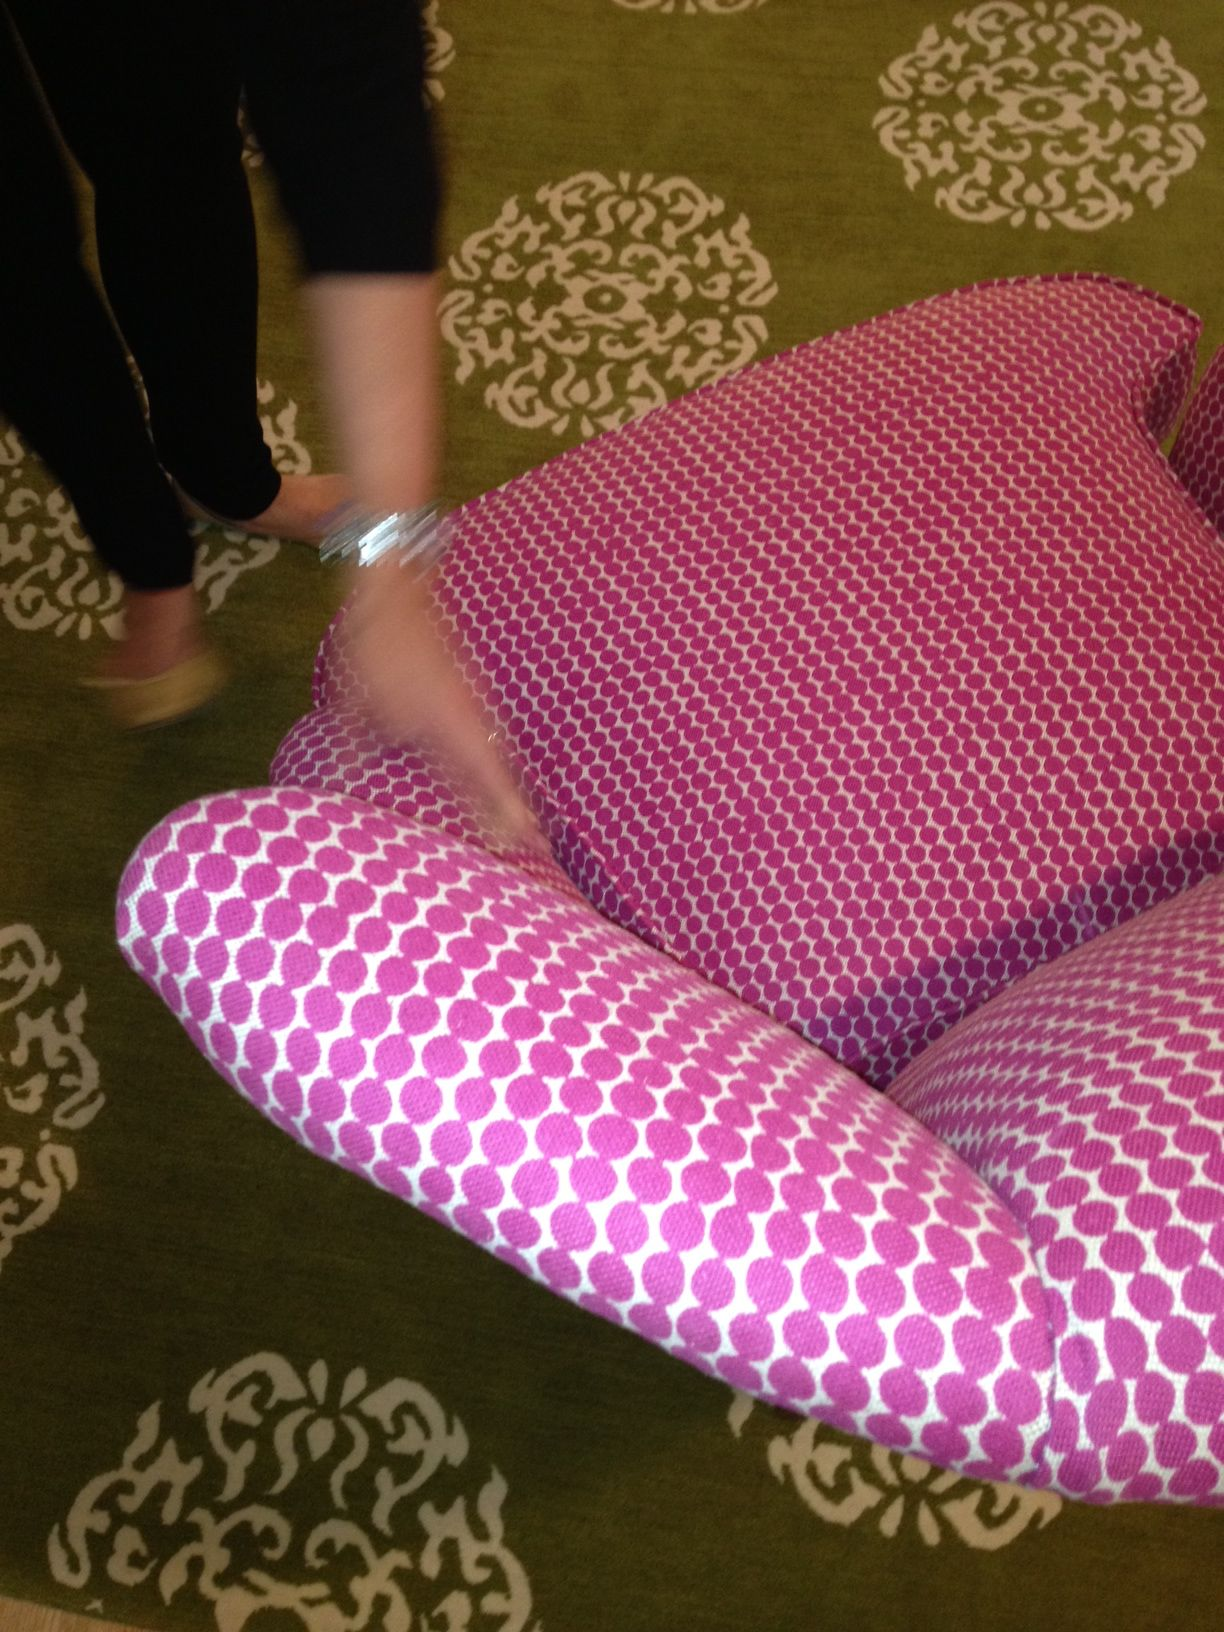 Here S The Sweet Hable Magenta Beads Wing Back At Home We Love It Paired With This Madeline Weinrib Olive Green Area Rug Madeline Weinrib Green Area Rugs Rugs